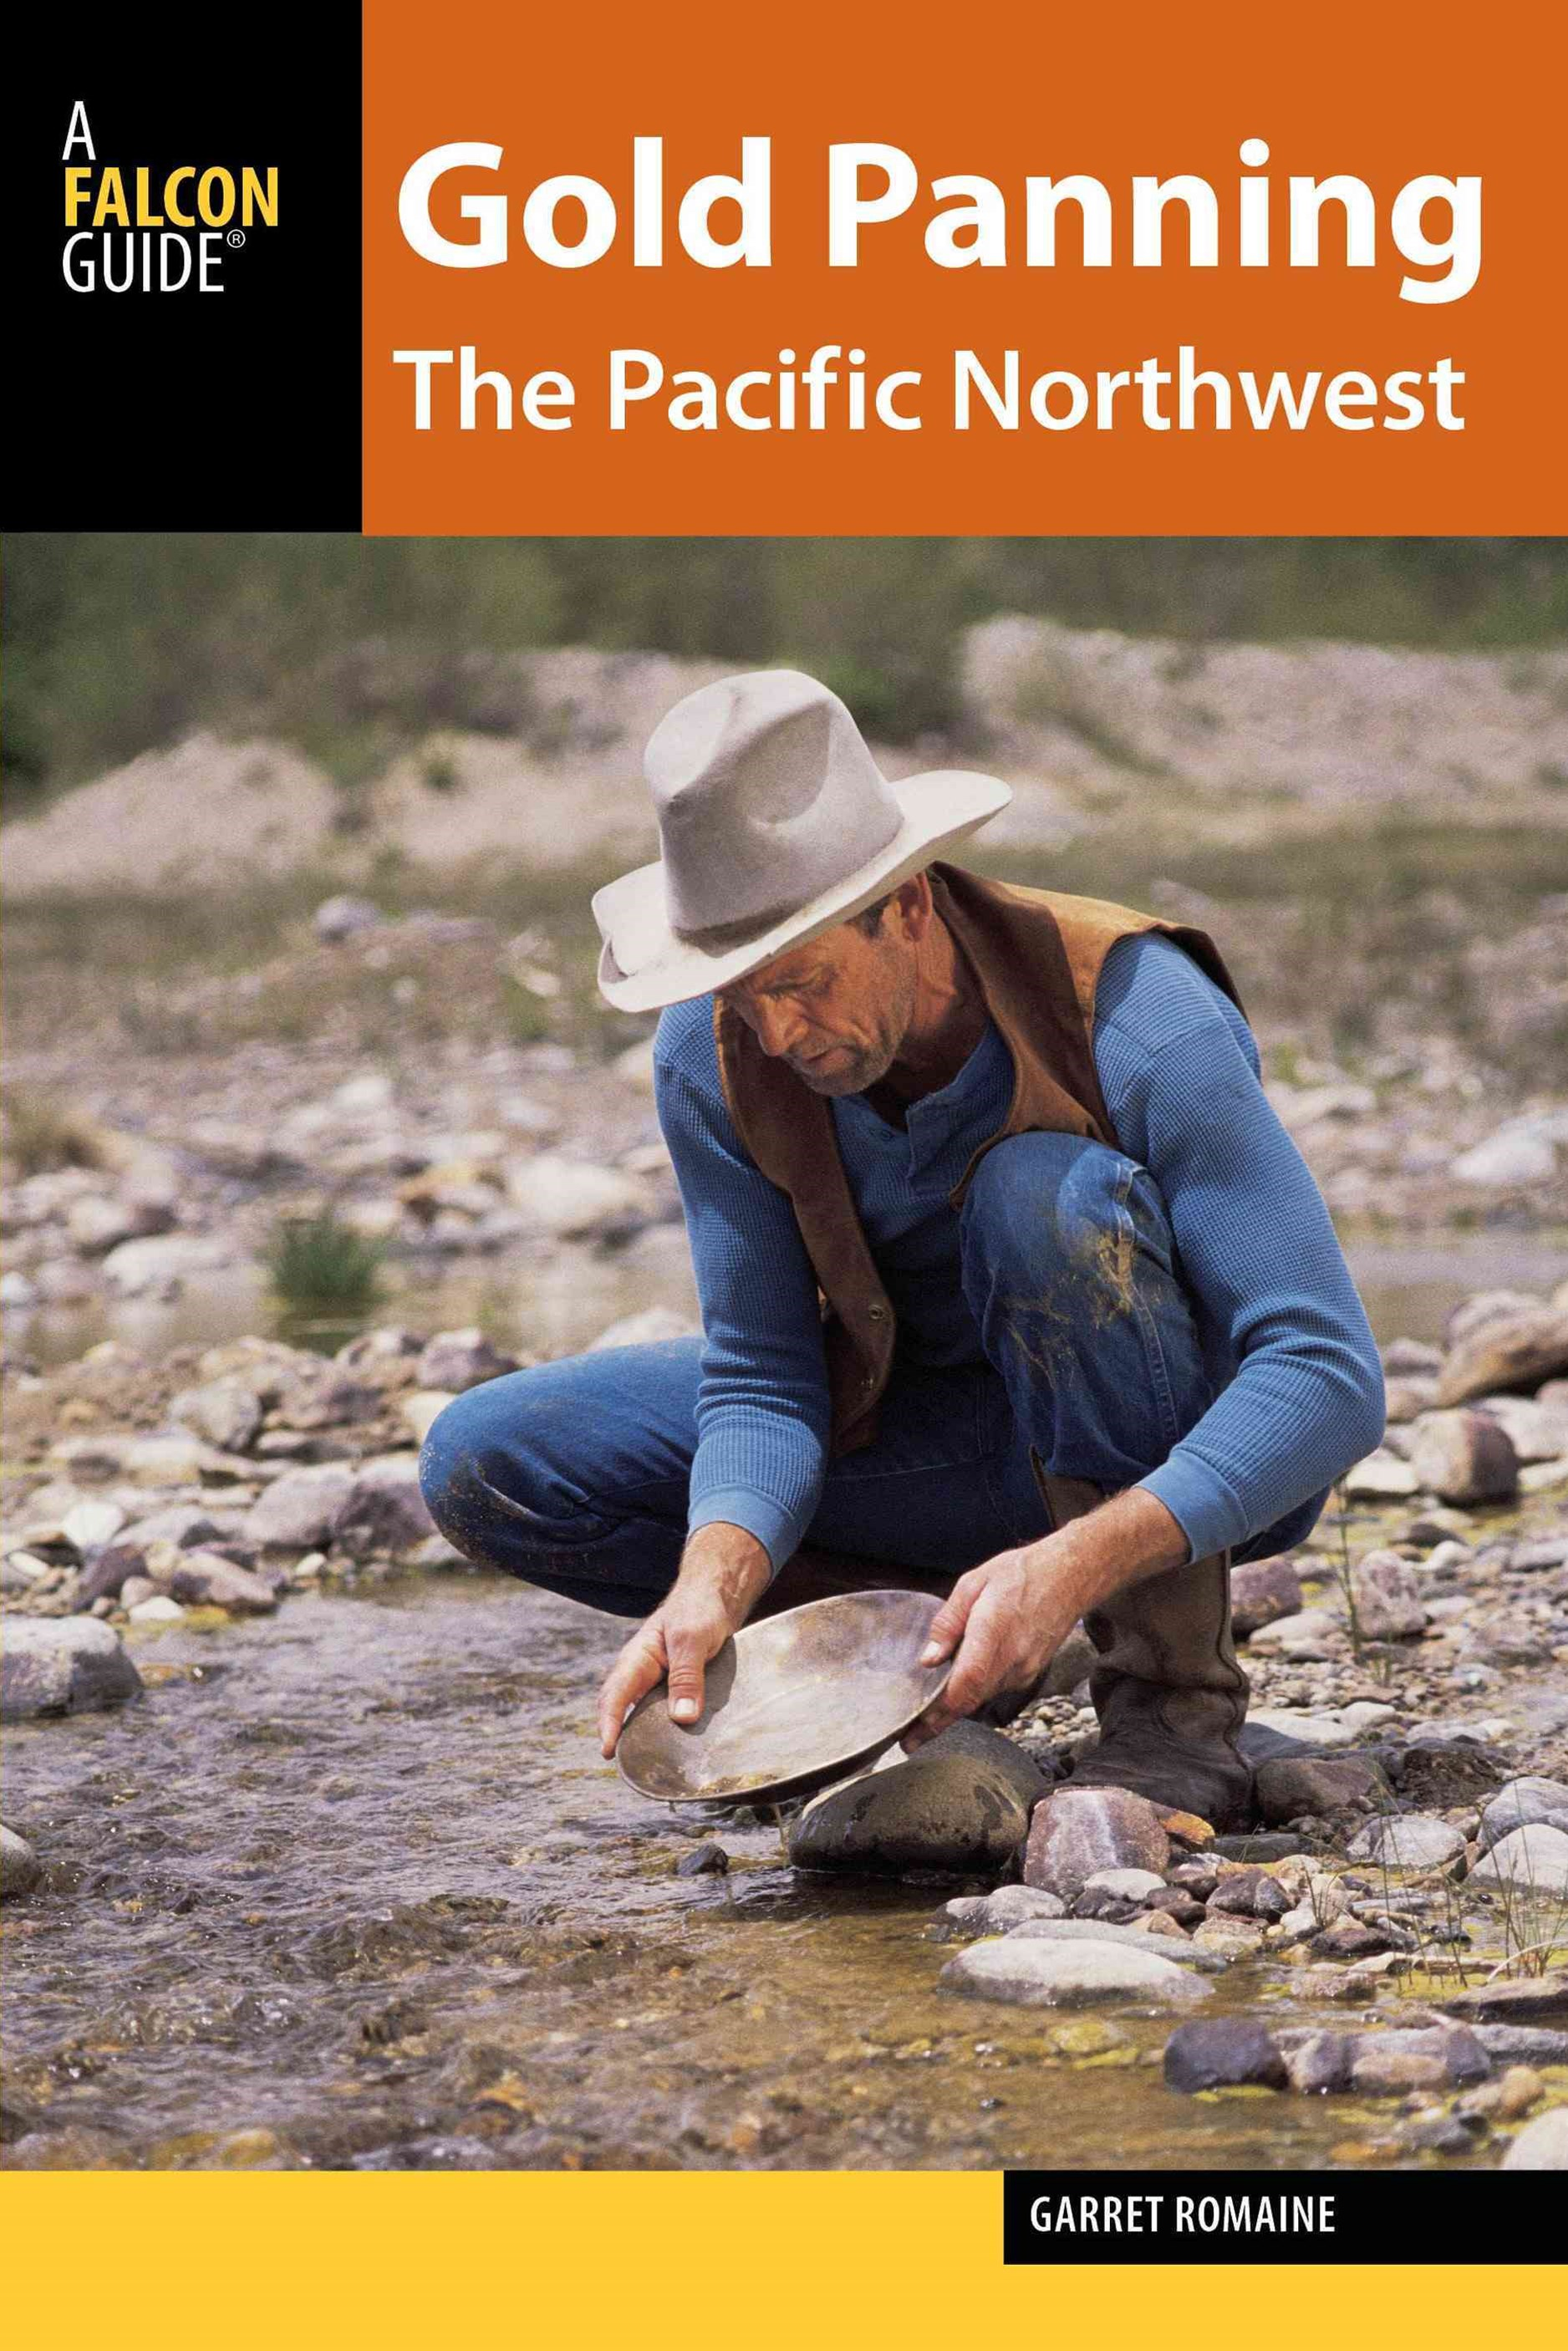 Gold Panning - The Pacific Northwest